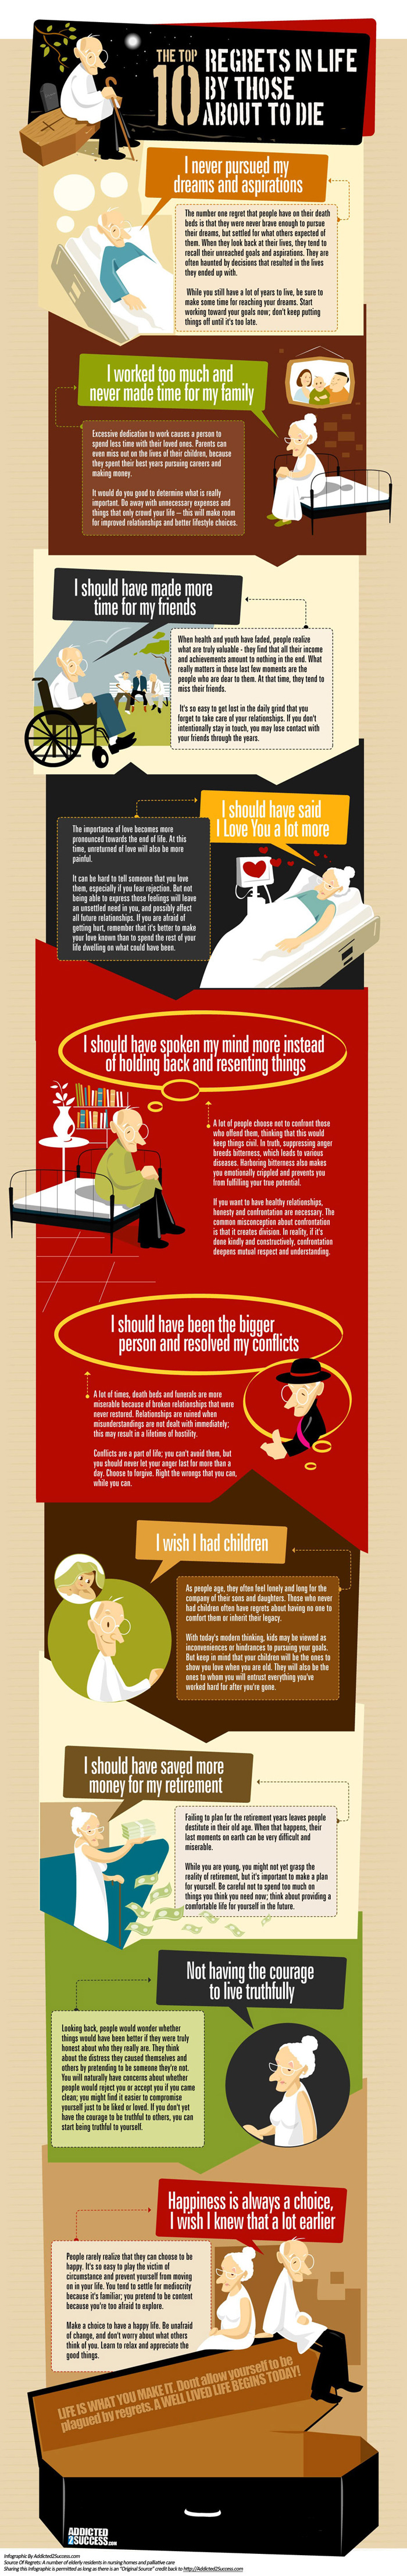 Infographic+The+Top+10+Regrets+In+Life+By+Those+About+To+Die-Addicted2Success1